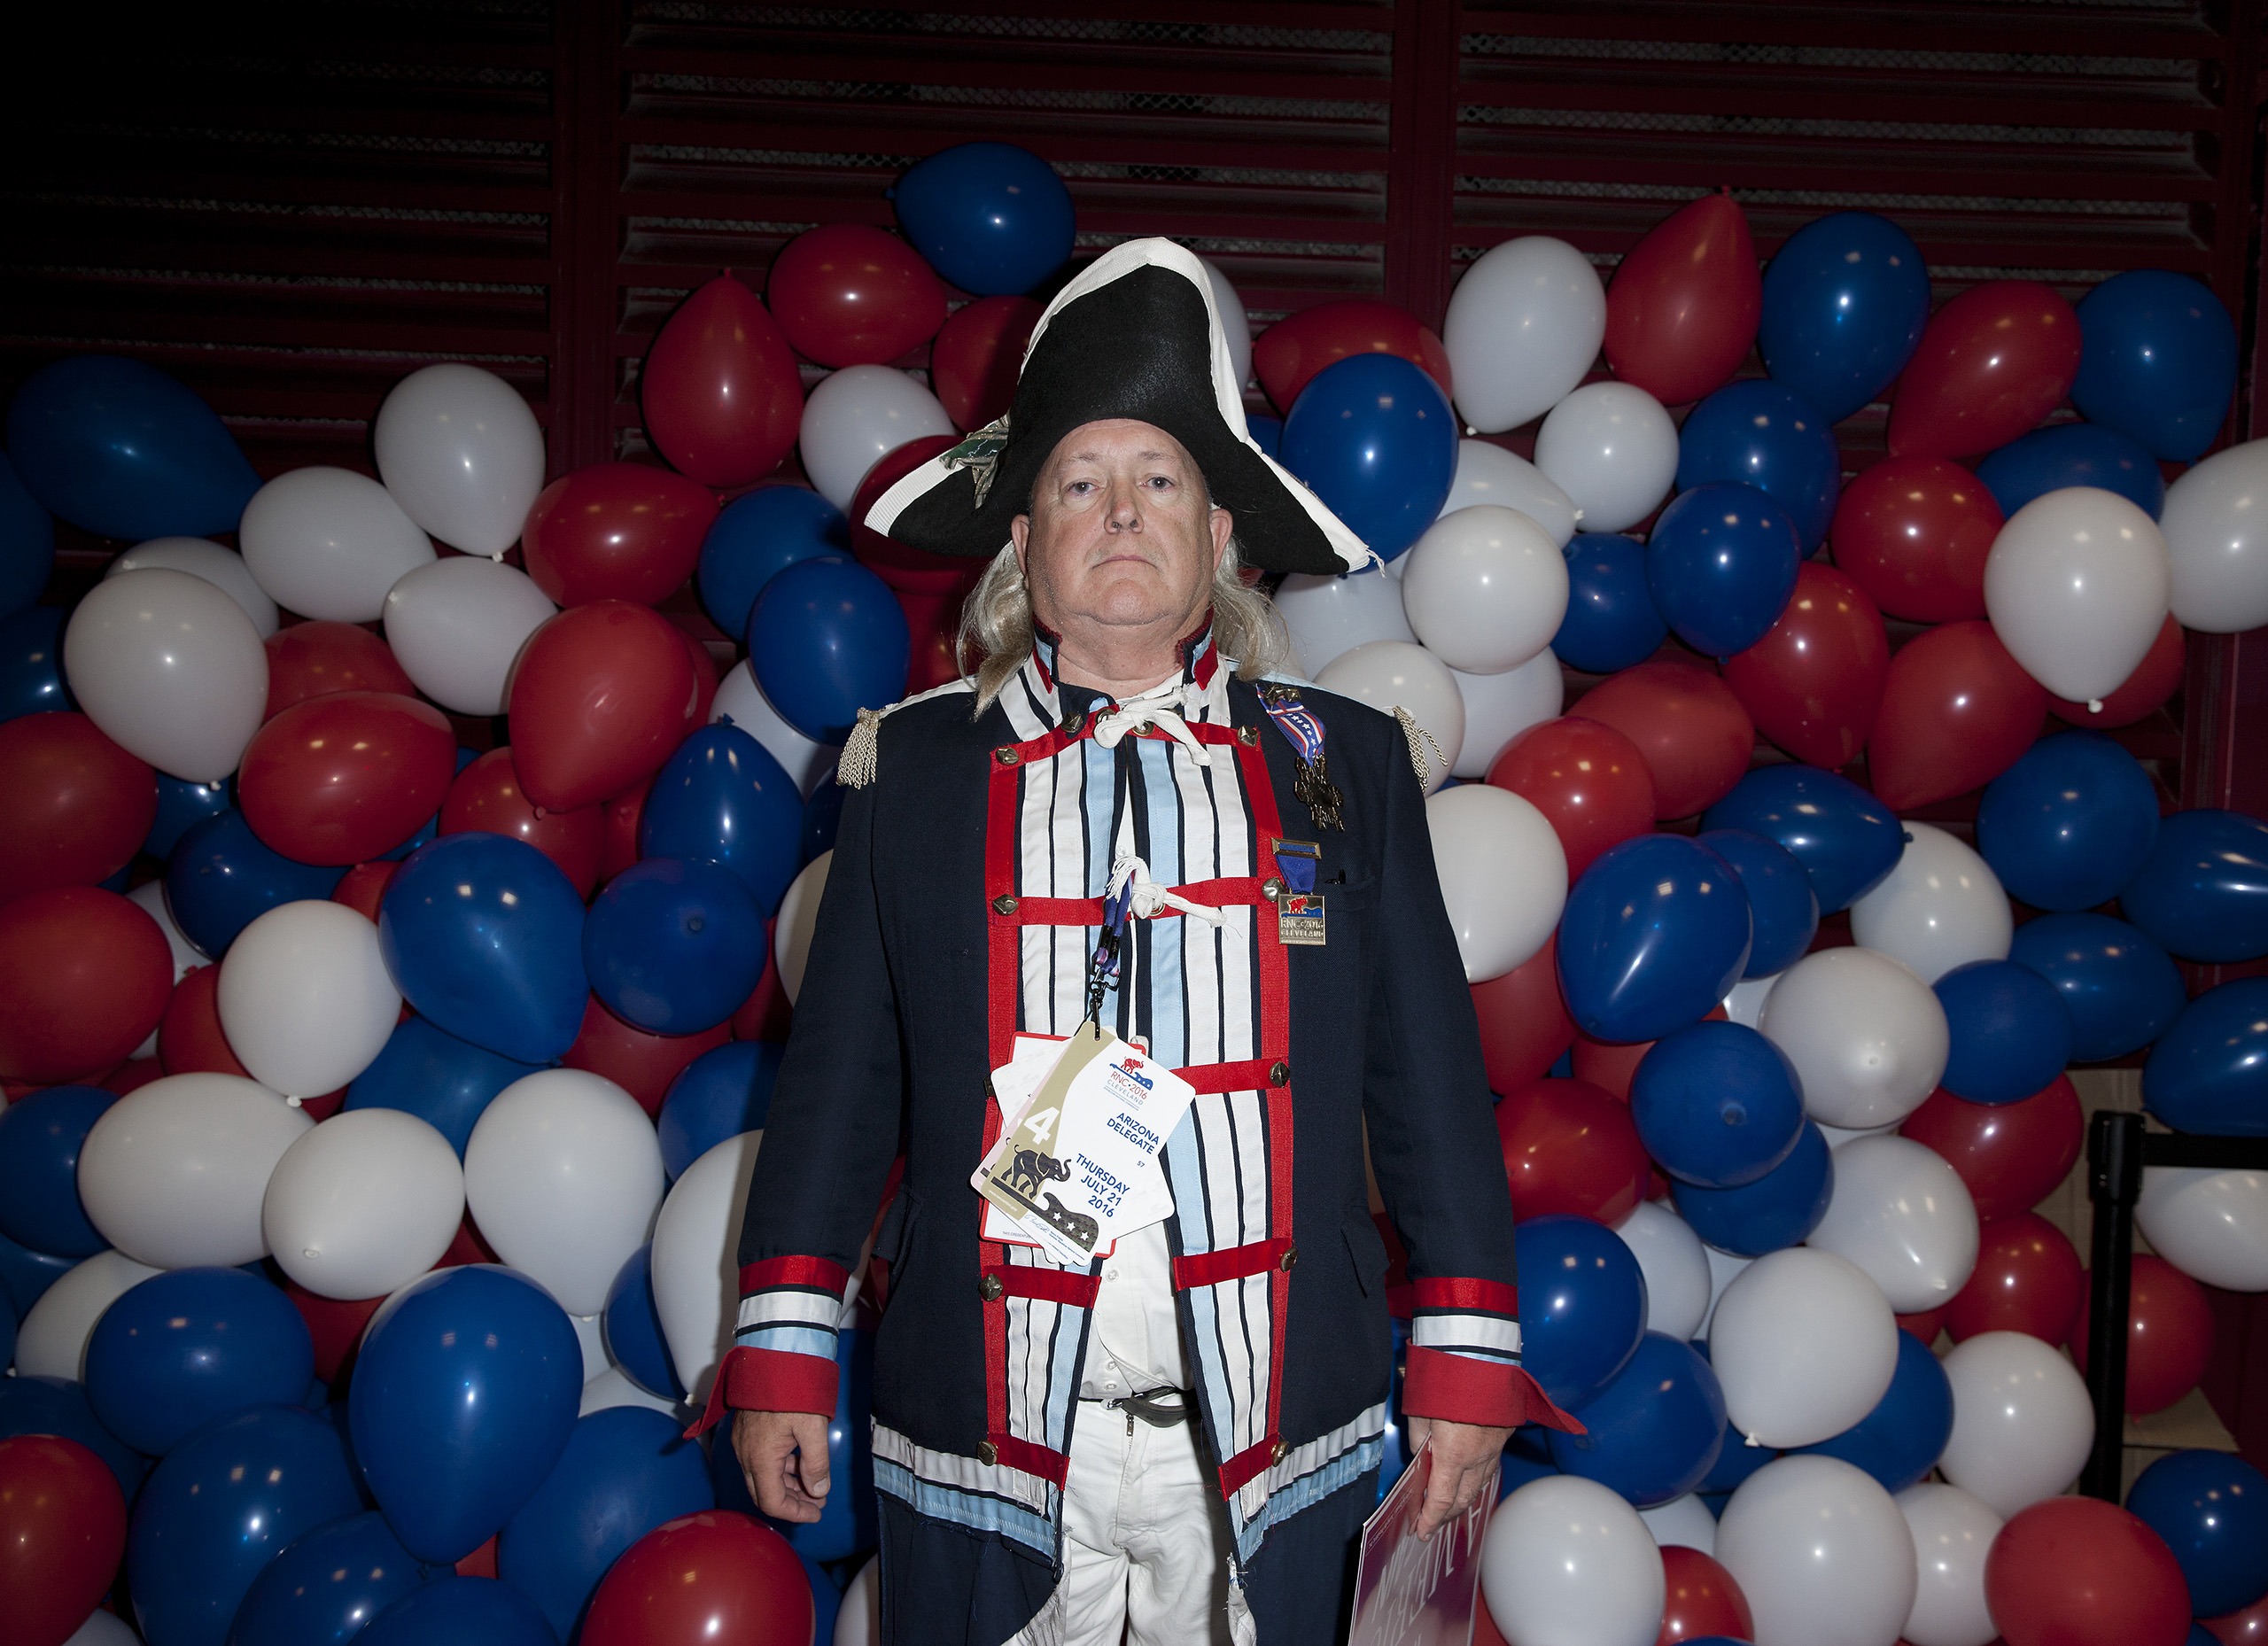 An attendees in colonial dress at the Republican National Convention on July 21, 2016 at the Quicken Loans Arena in Cleveland.